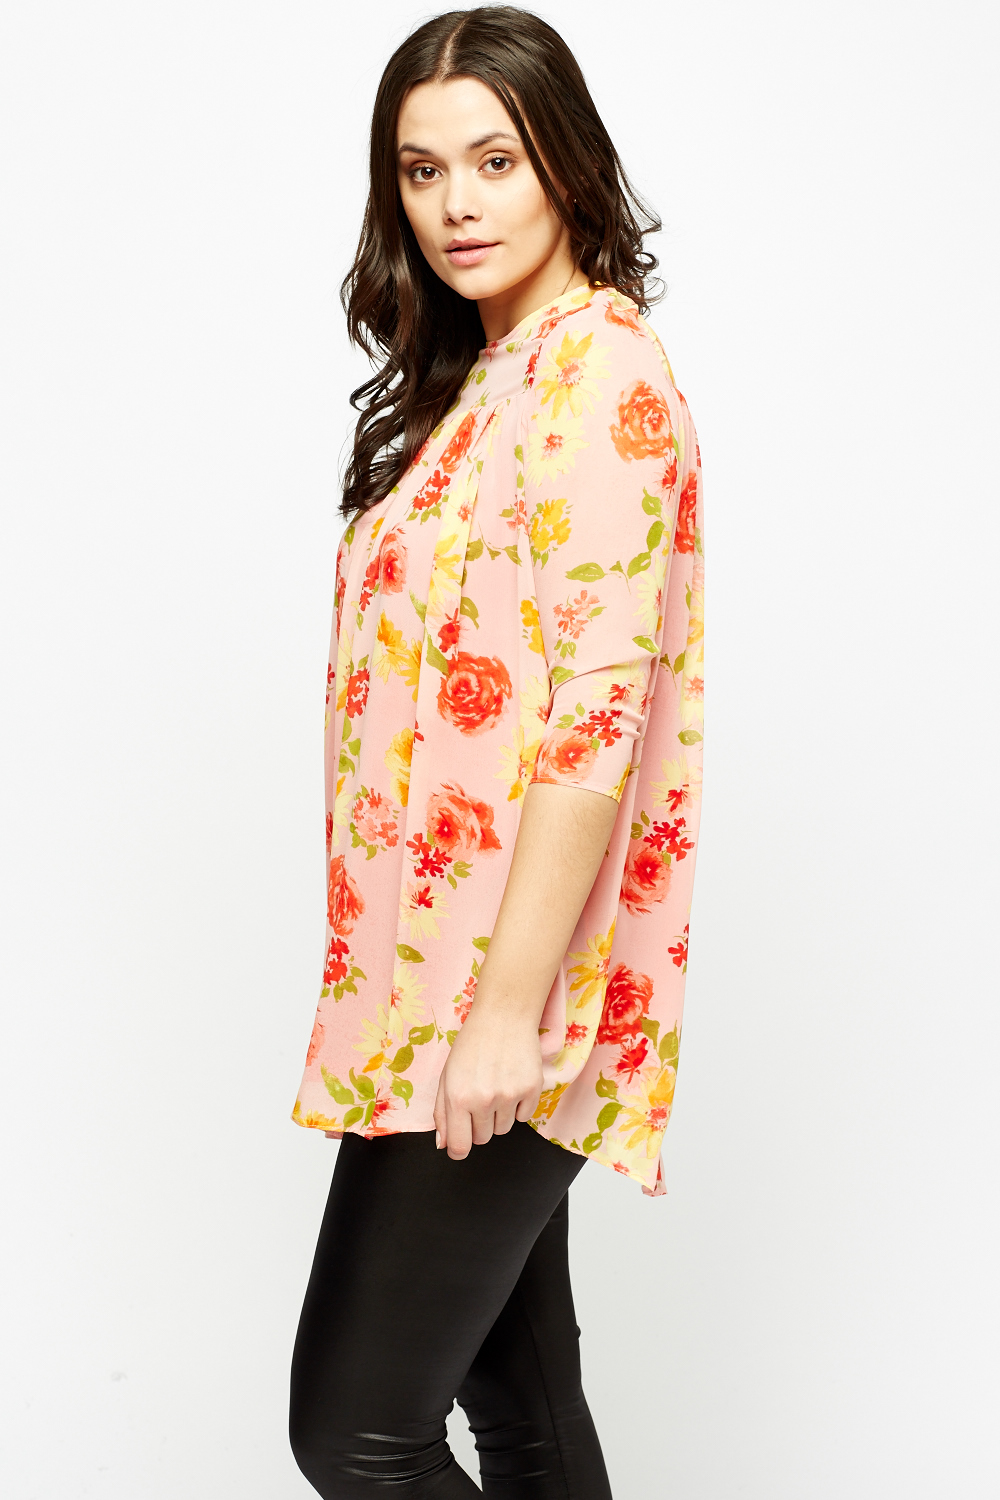 Shop Pink Owl Women's Tops - Tunics at up to 70% off! Get the lowest price on your favorite brands at Poshmark. Poshmark makes shopping fun, affordable & easy!